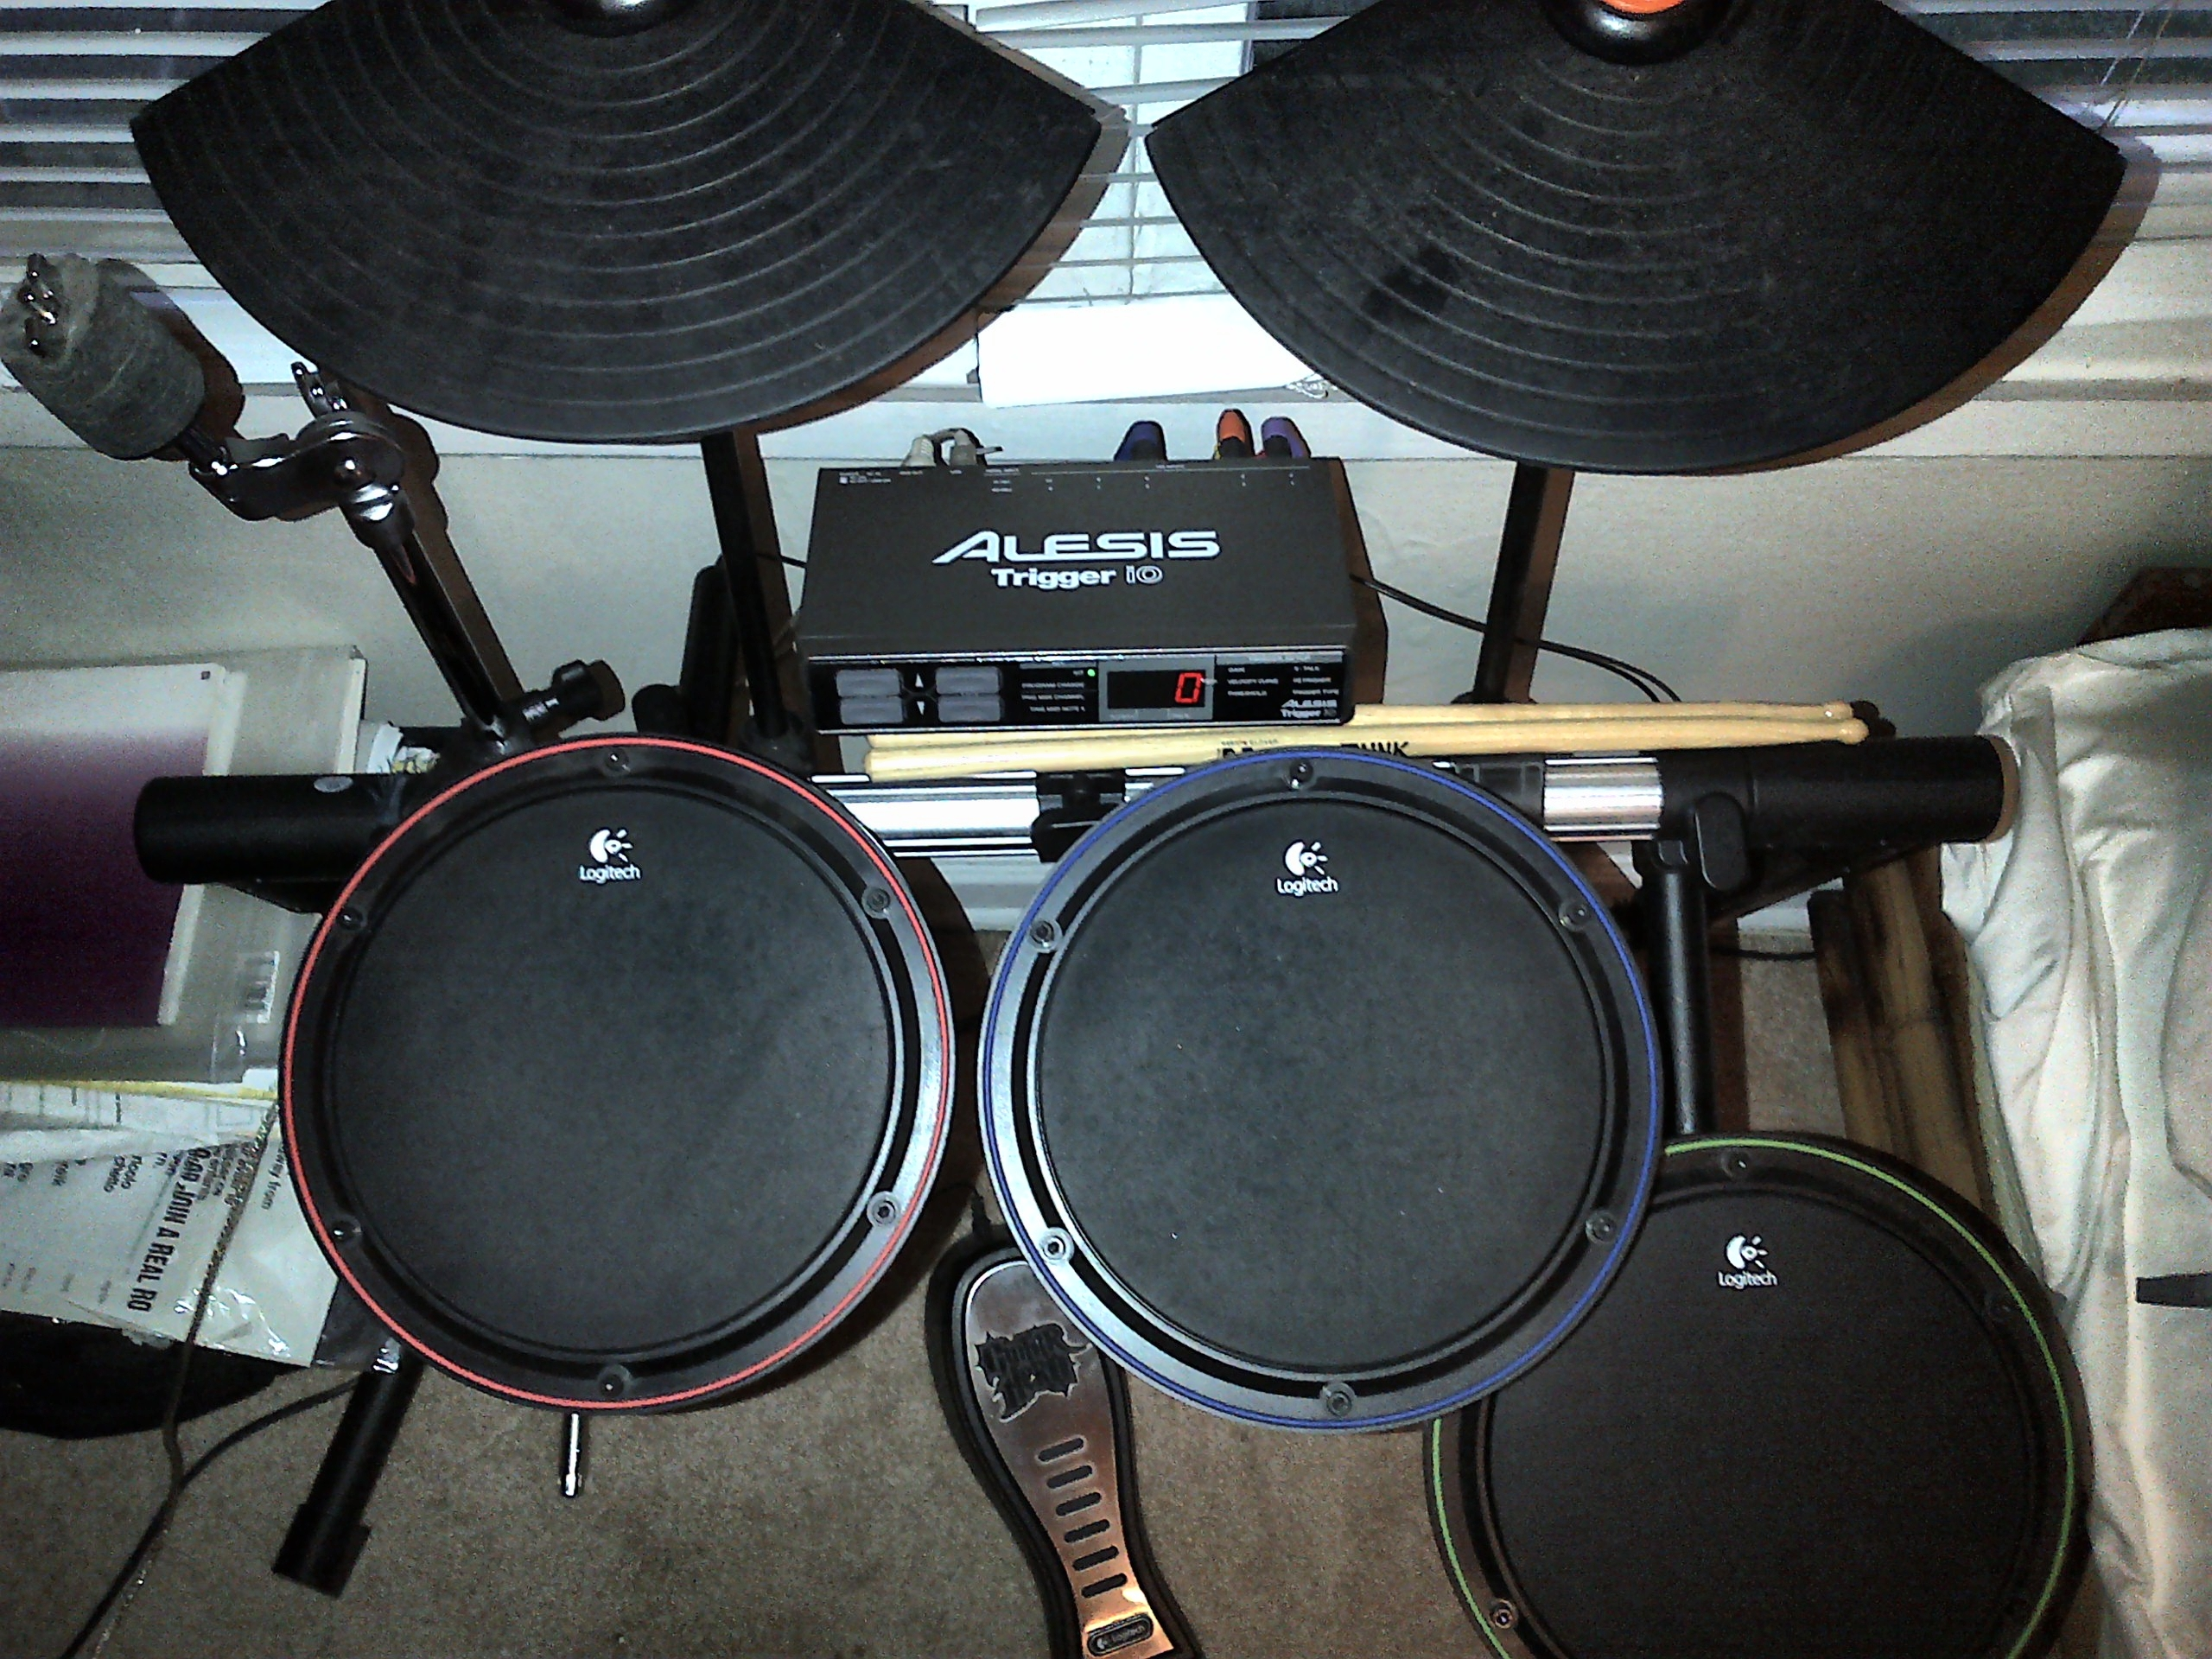 Logitech Drums (Wii/PS3/XBox) with MIDI (finally) | Thoughts